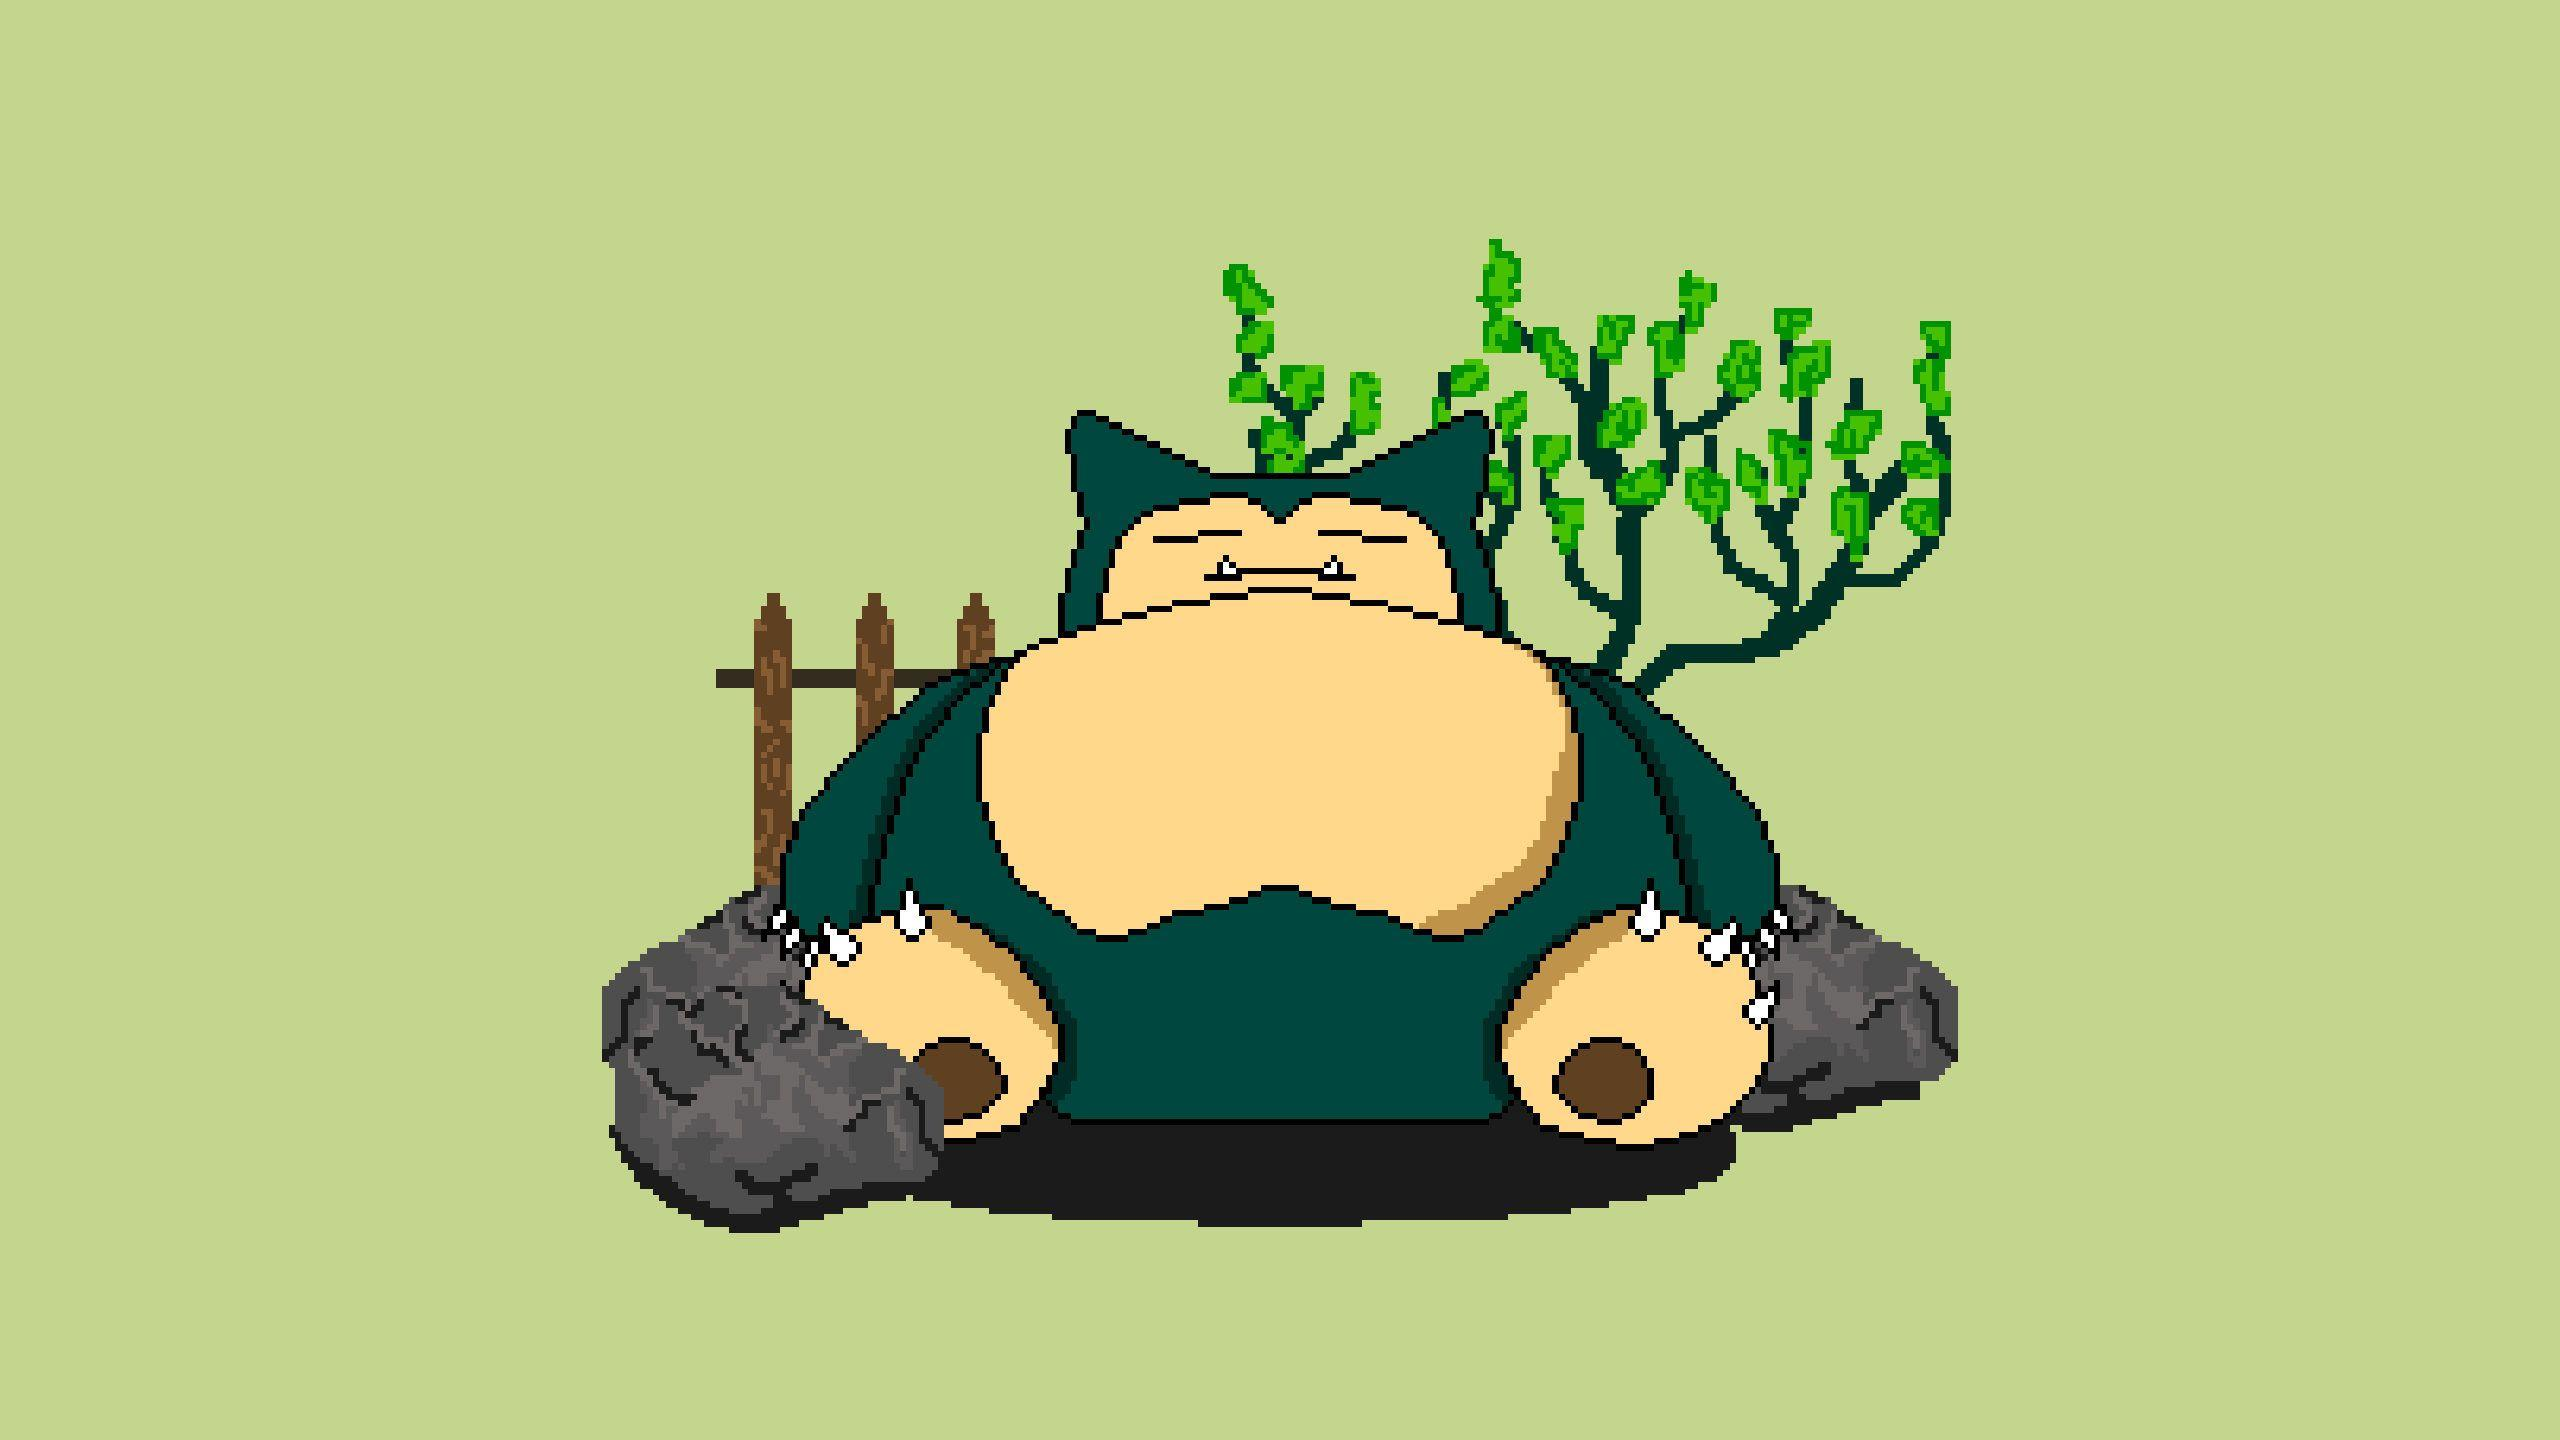 Pokemon Snorlax Wallpaper 31+ - HD wallpaper Collections - TrBBBBB.com